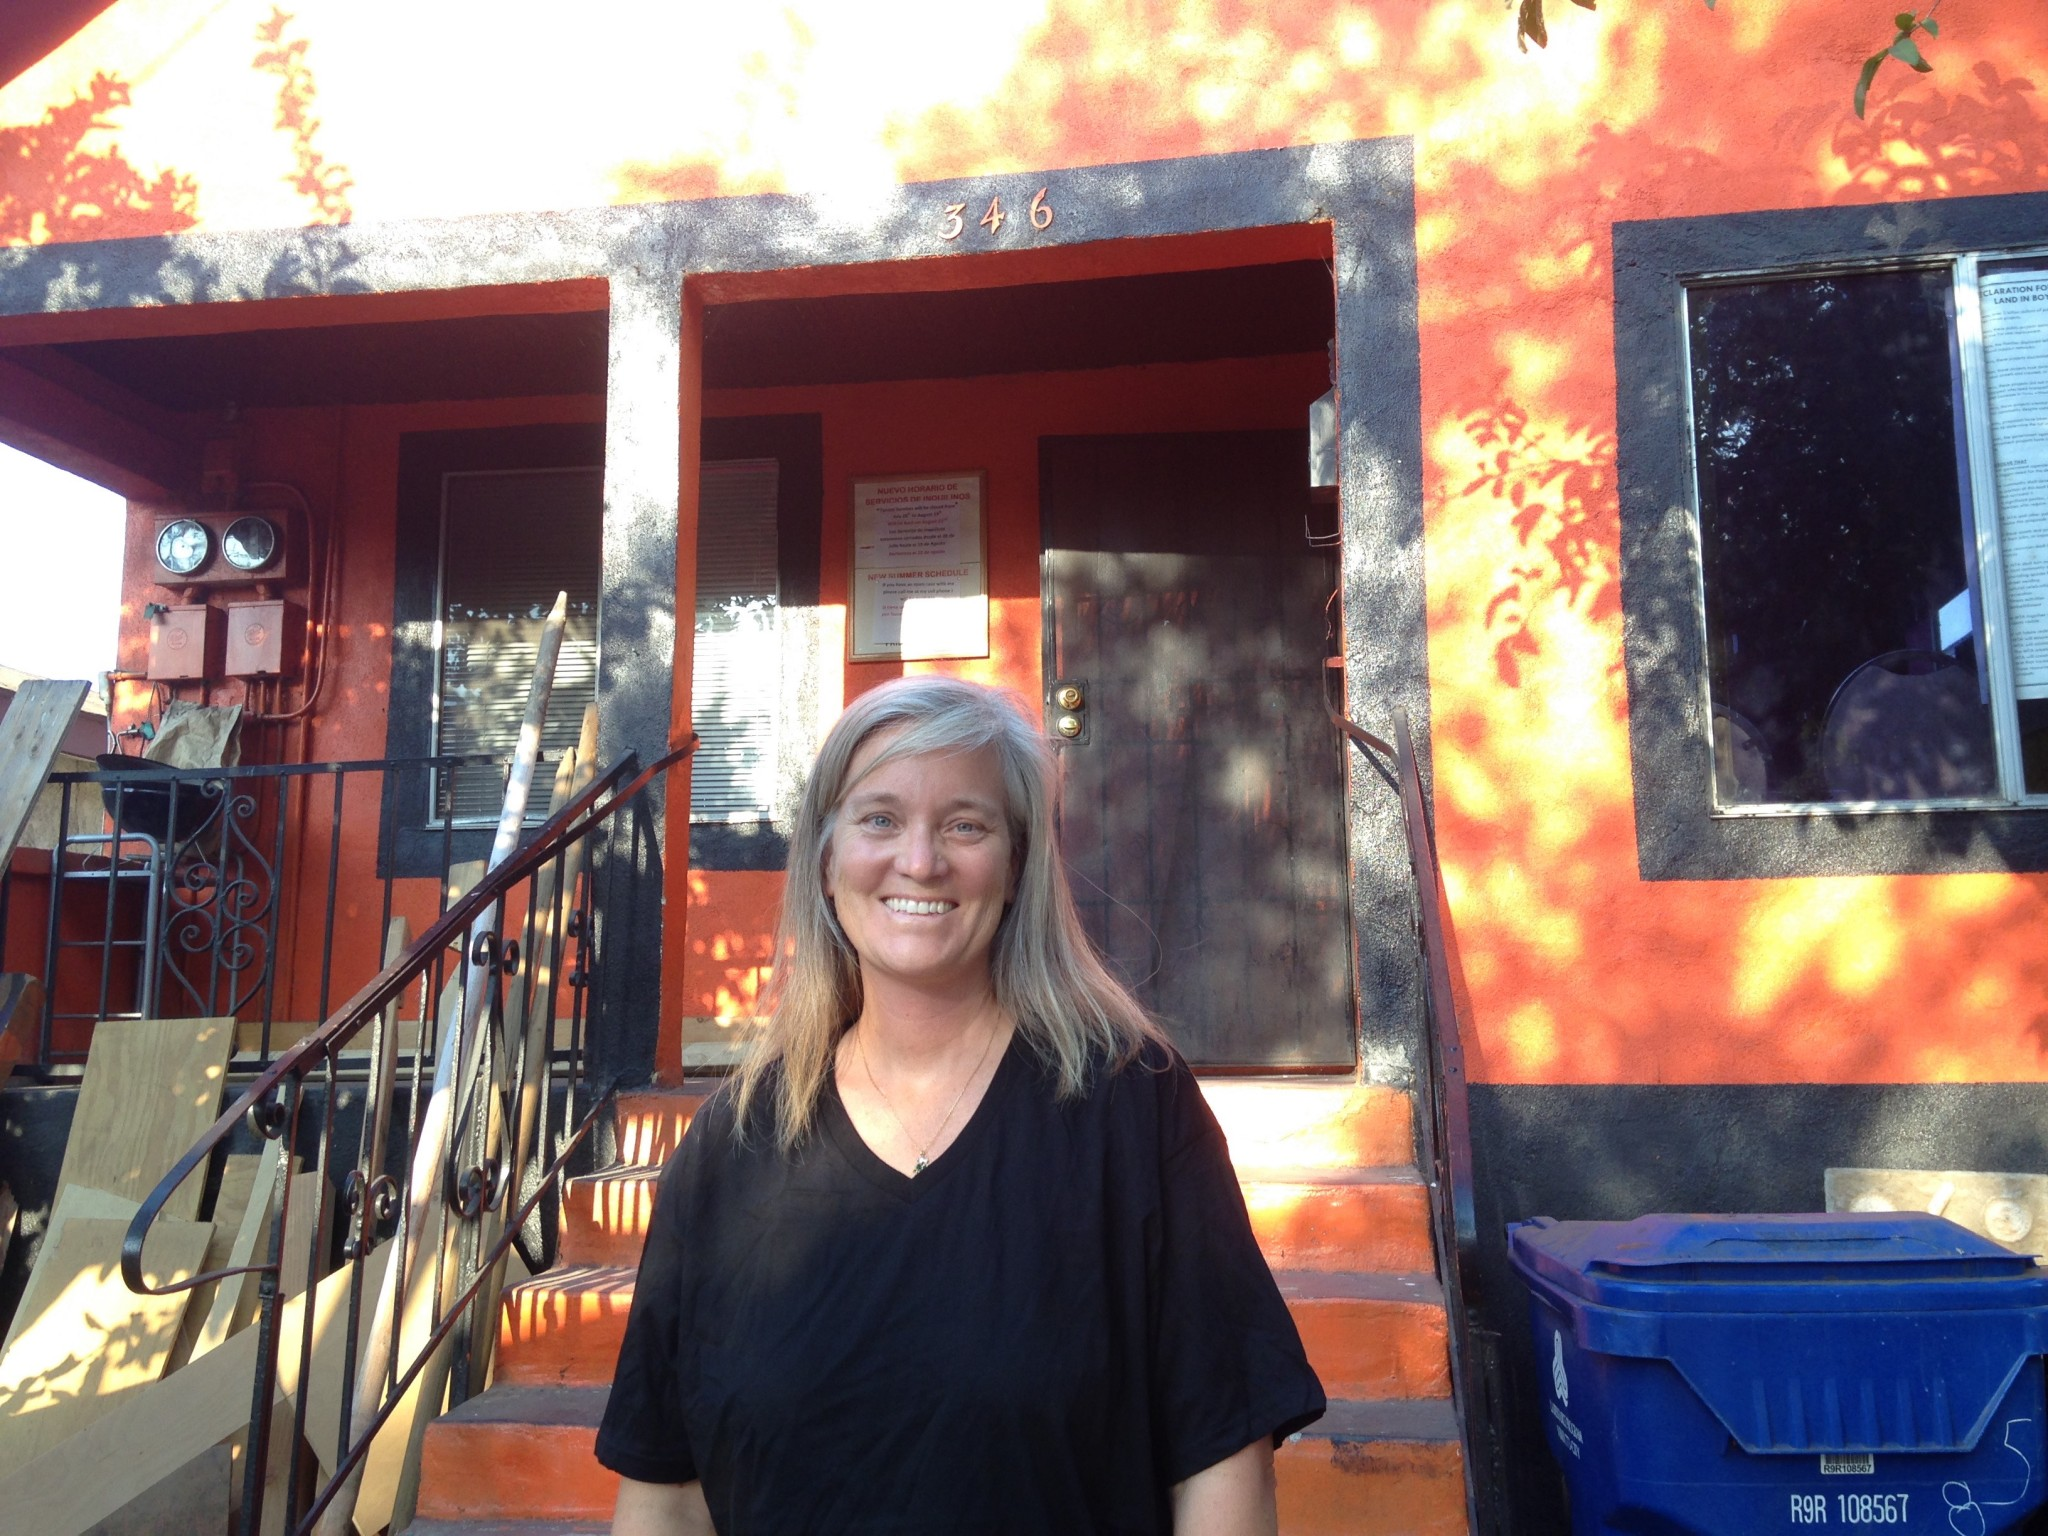 Elizabeth Blaney, co-founder of Union de Vecinos, in front of the group's office in Boyle Heights. Photo by Avishay Artsy.